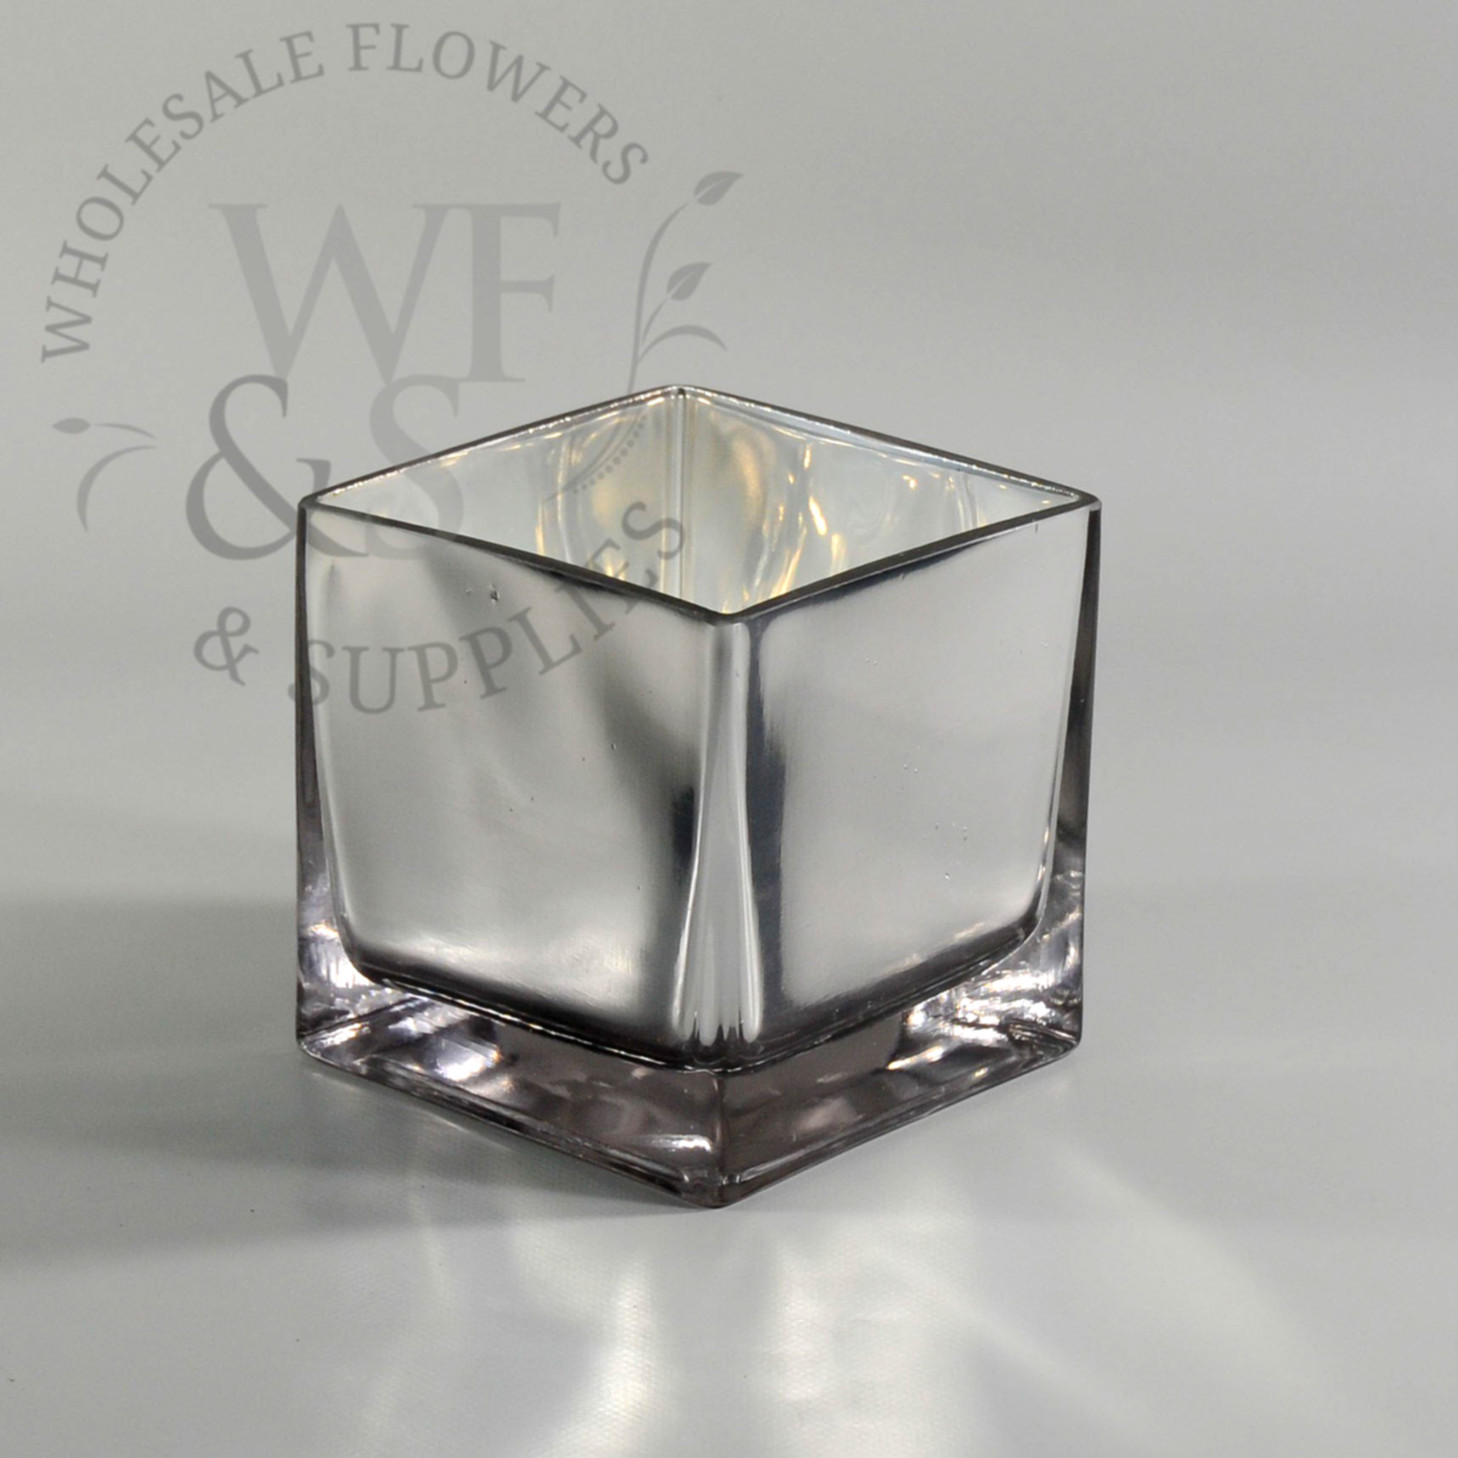 4x4 square vase of square glass vase floral vases hassle free shipping afloral within square glass vase floral vases hassle free shipping afloral pictures